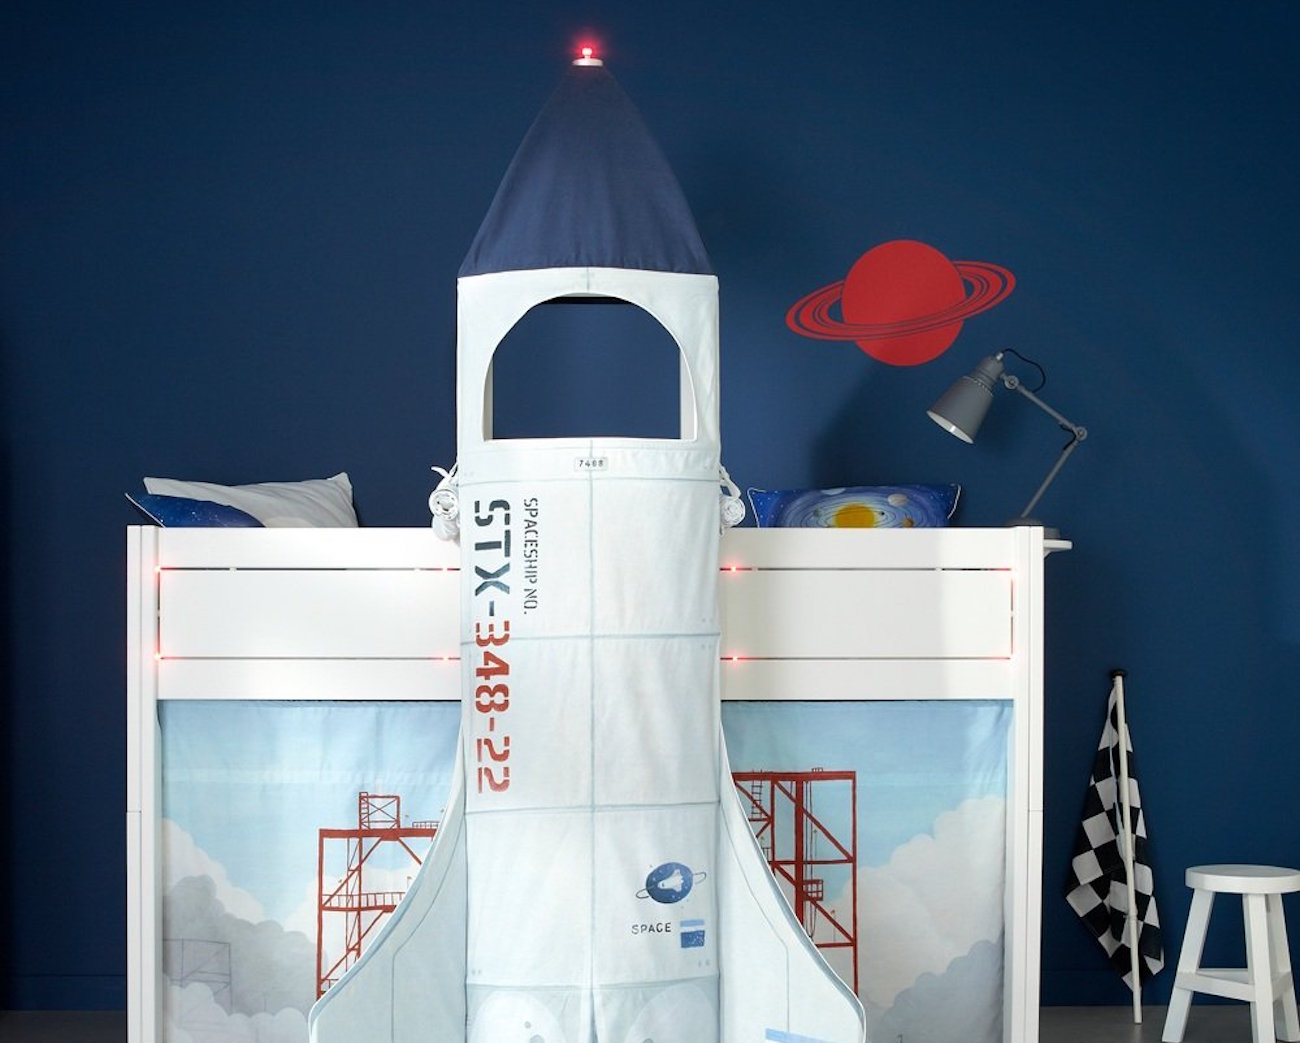 discovery-space-rocket-bed-by-lifetime-new-4